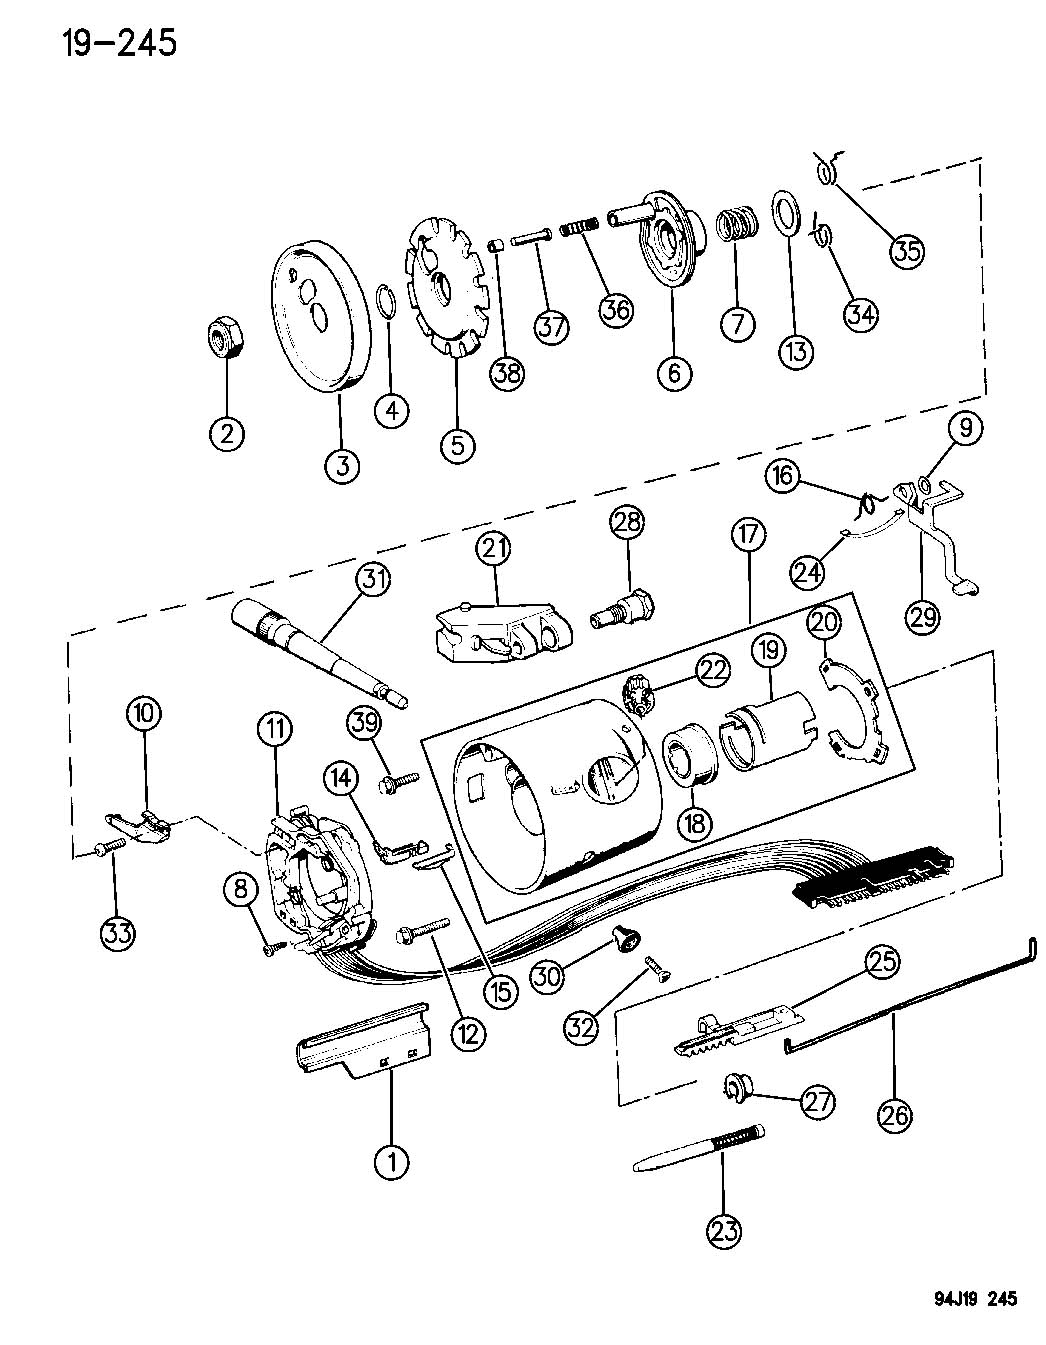 Jeep Wrangler Alternator Wiring